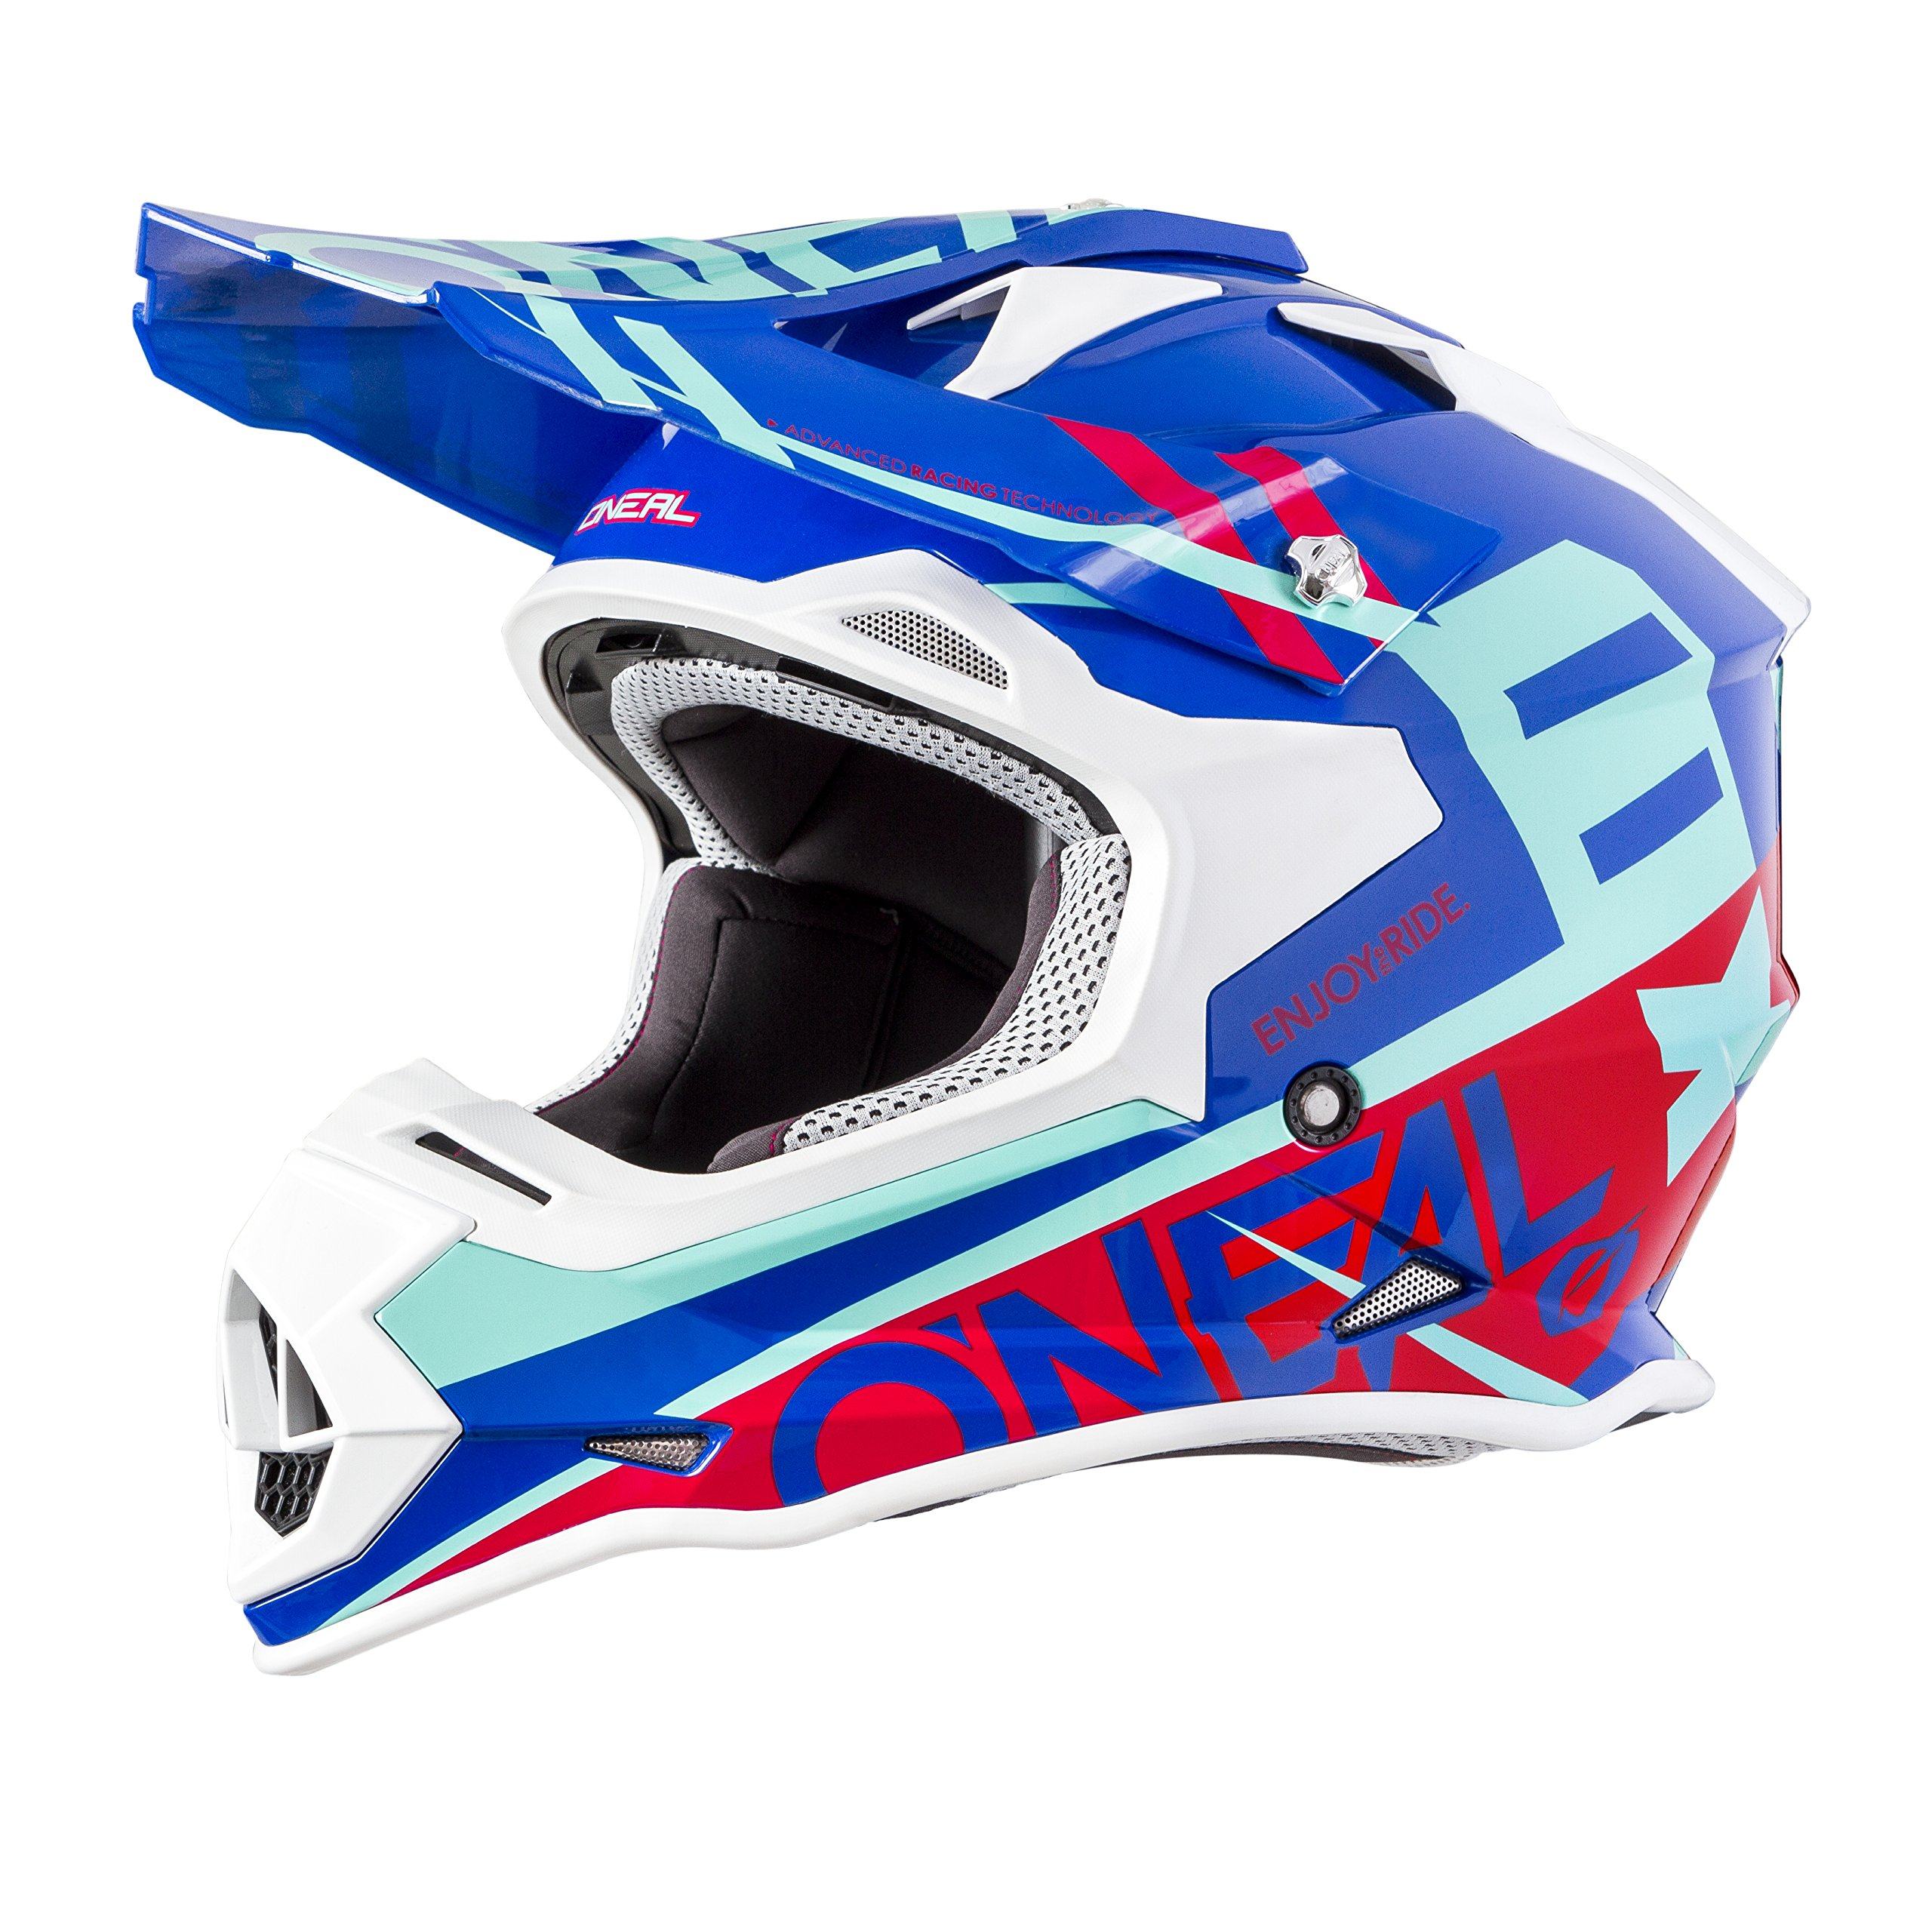 O'Neal 2SERIES Mens Off-Road SPYDE Helmet (Blue/Red, Small)